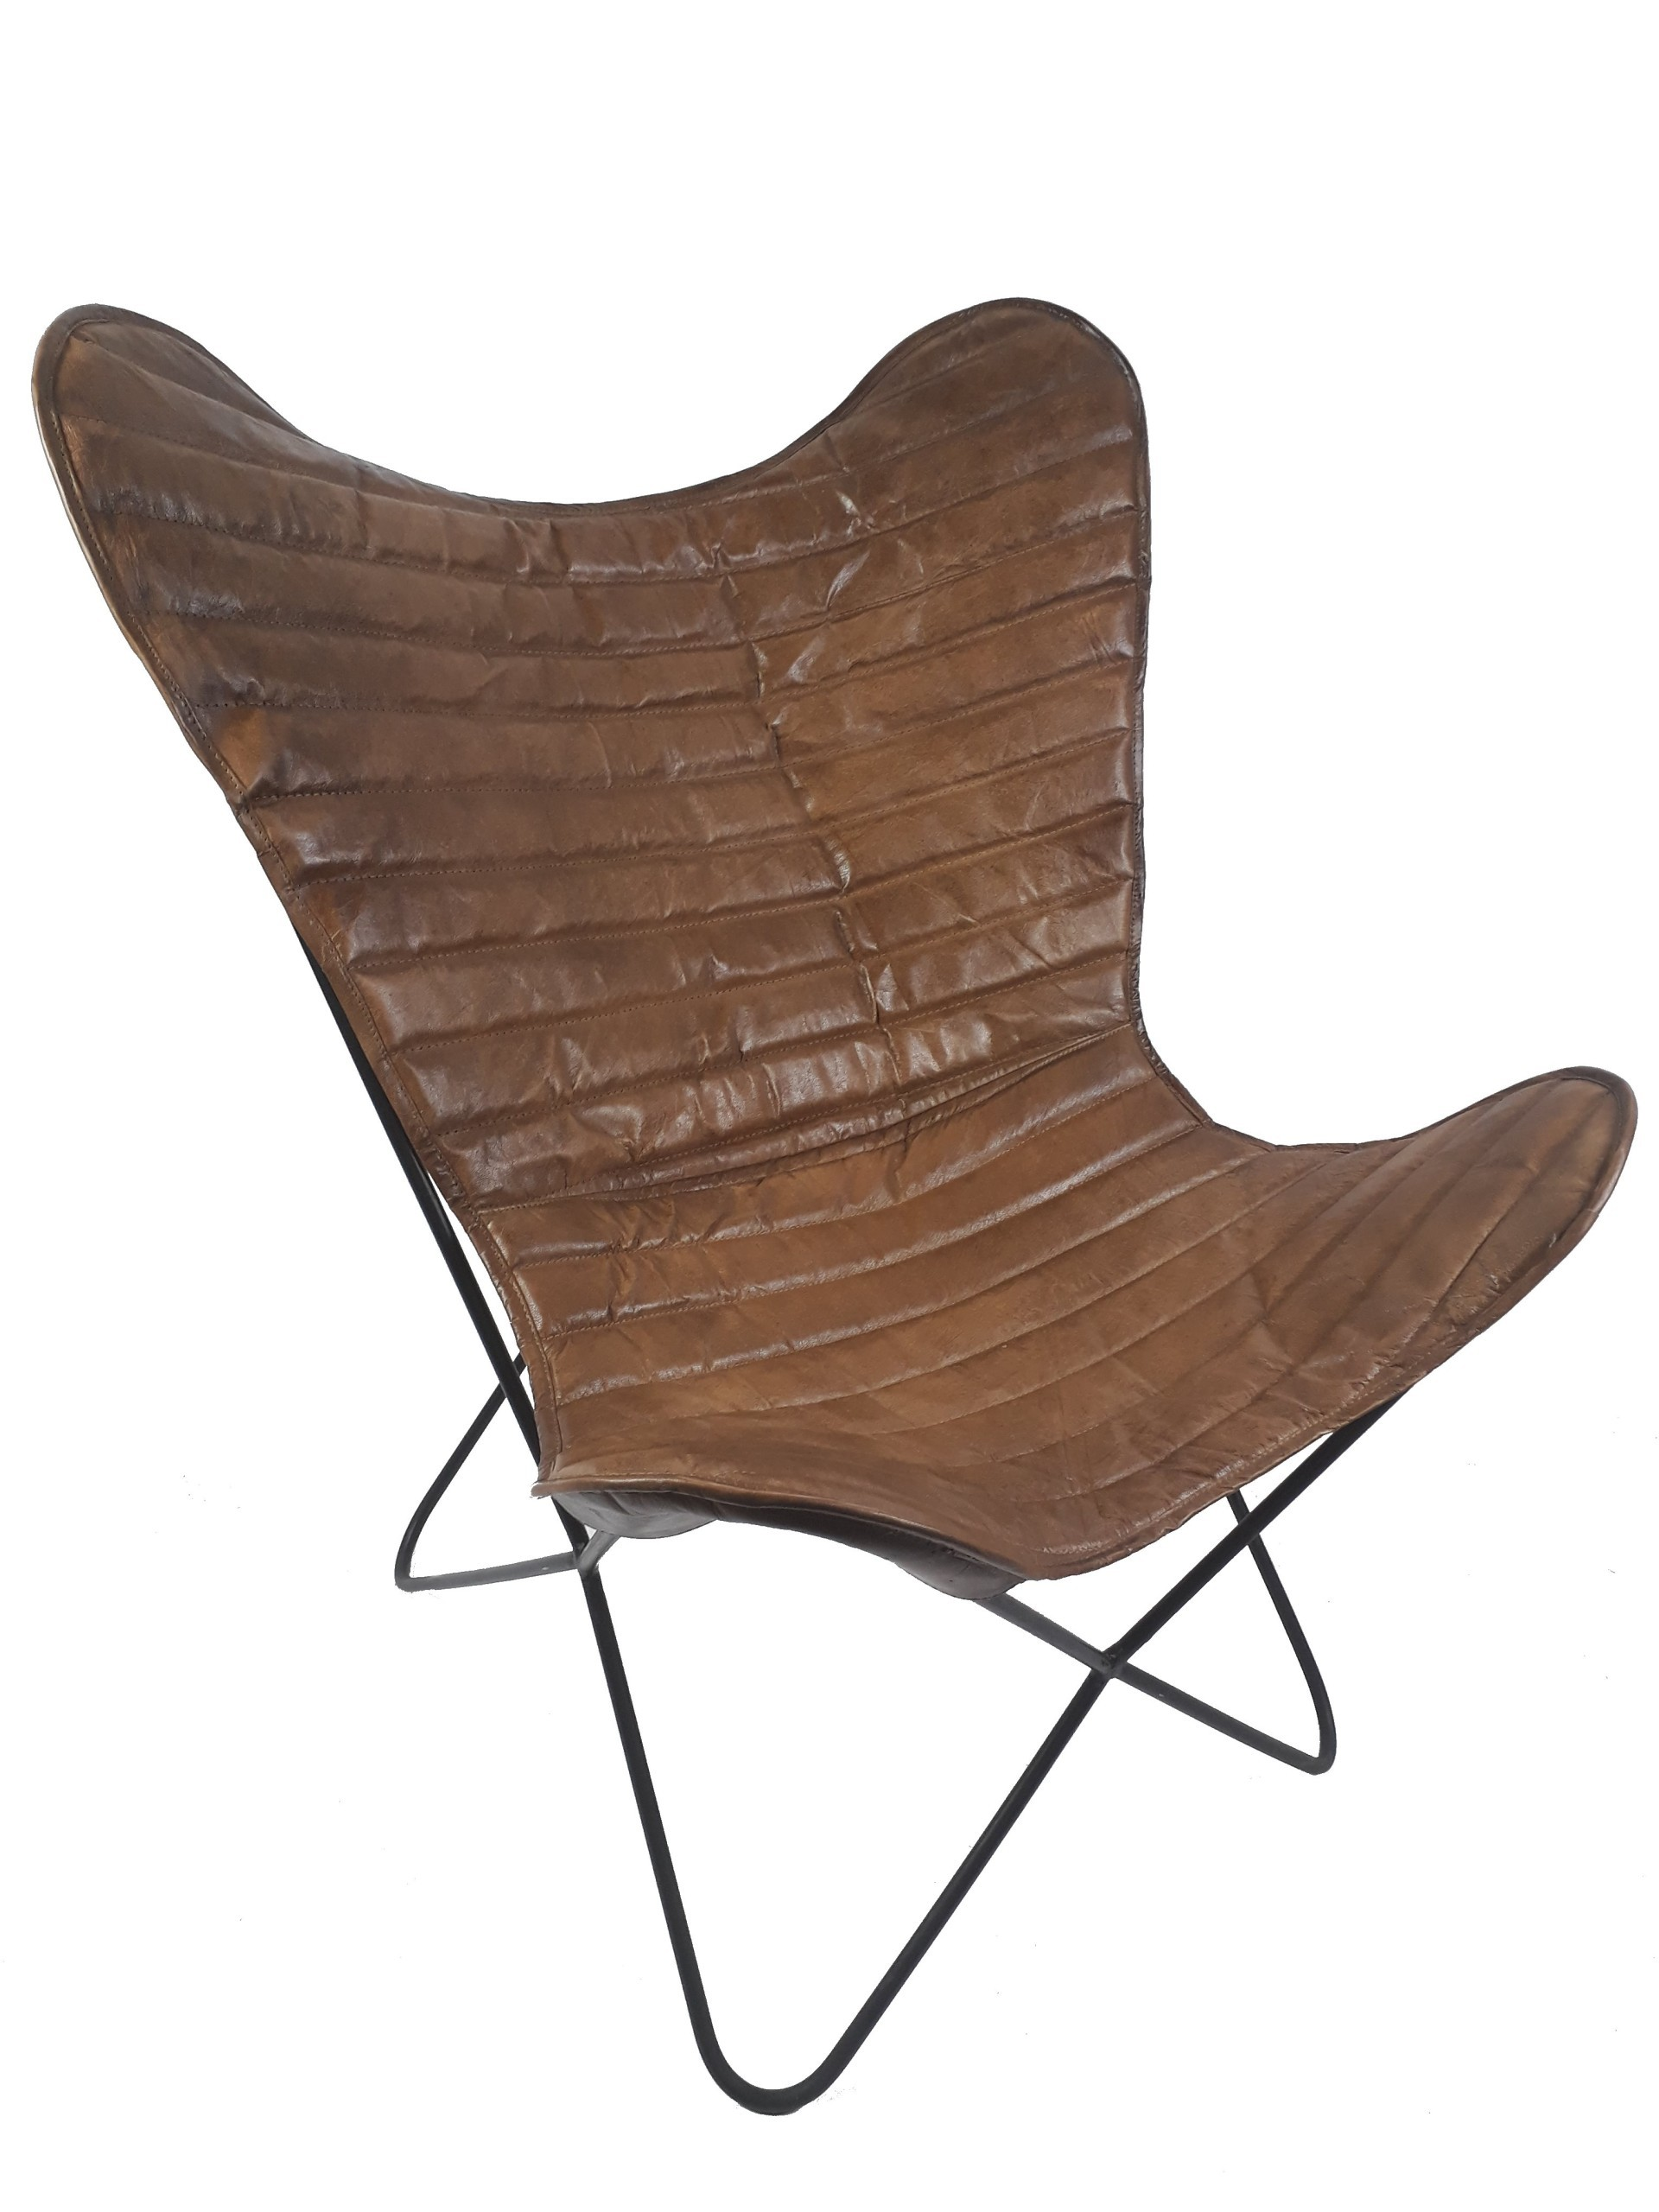 Saunaliege Rattan Vintage Sessel Butterfly Eco Leder Loungesessel